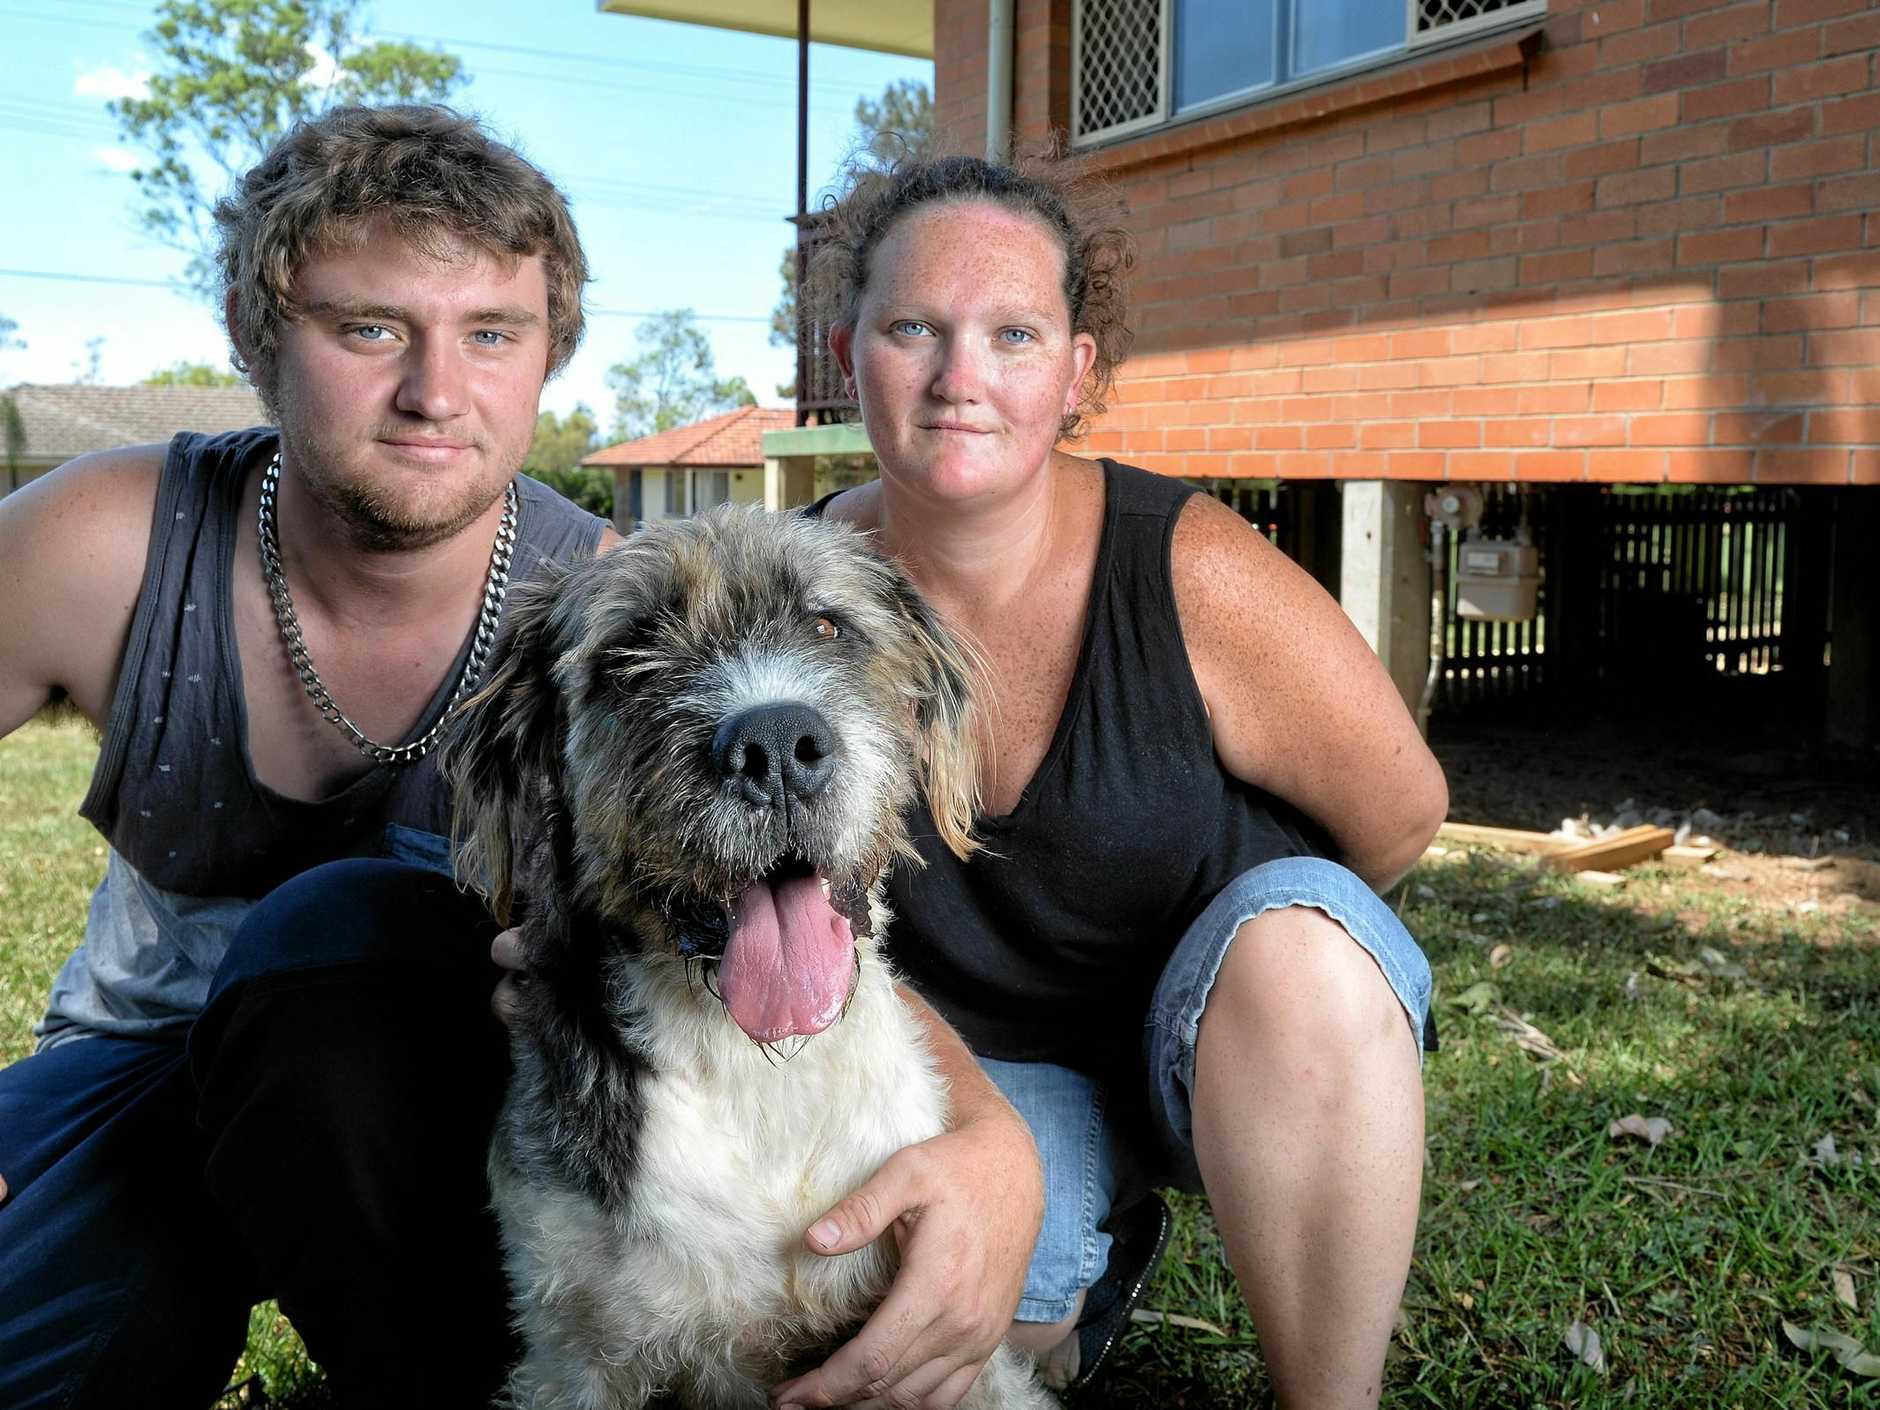 Jordan Melchior and Danielle Tupper with dog Snoopy who was was baited at the Leichardt property along with their other dog, Rusty, who died.